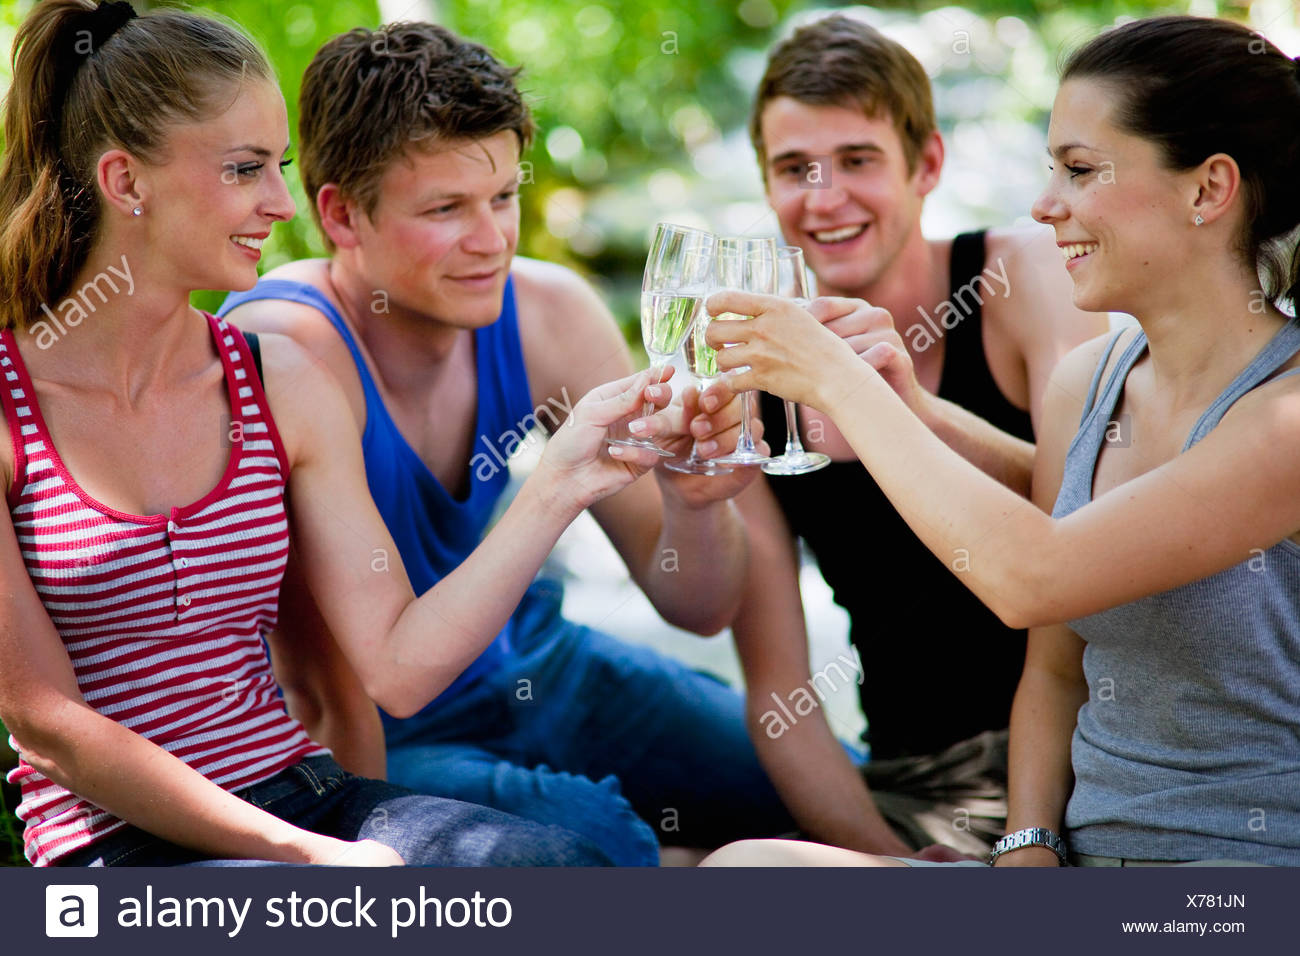 Italy, Tuscany, Friends clinking champagne glasses at picnic - Stock Image